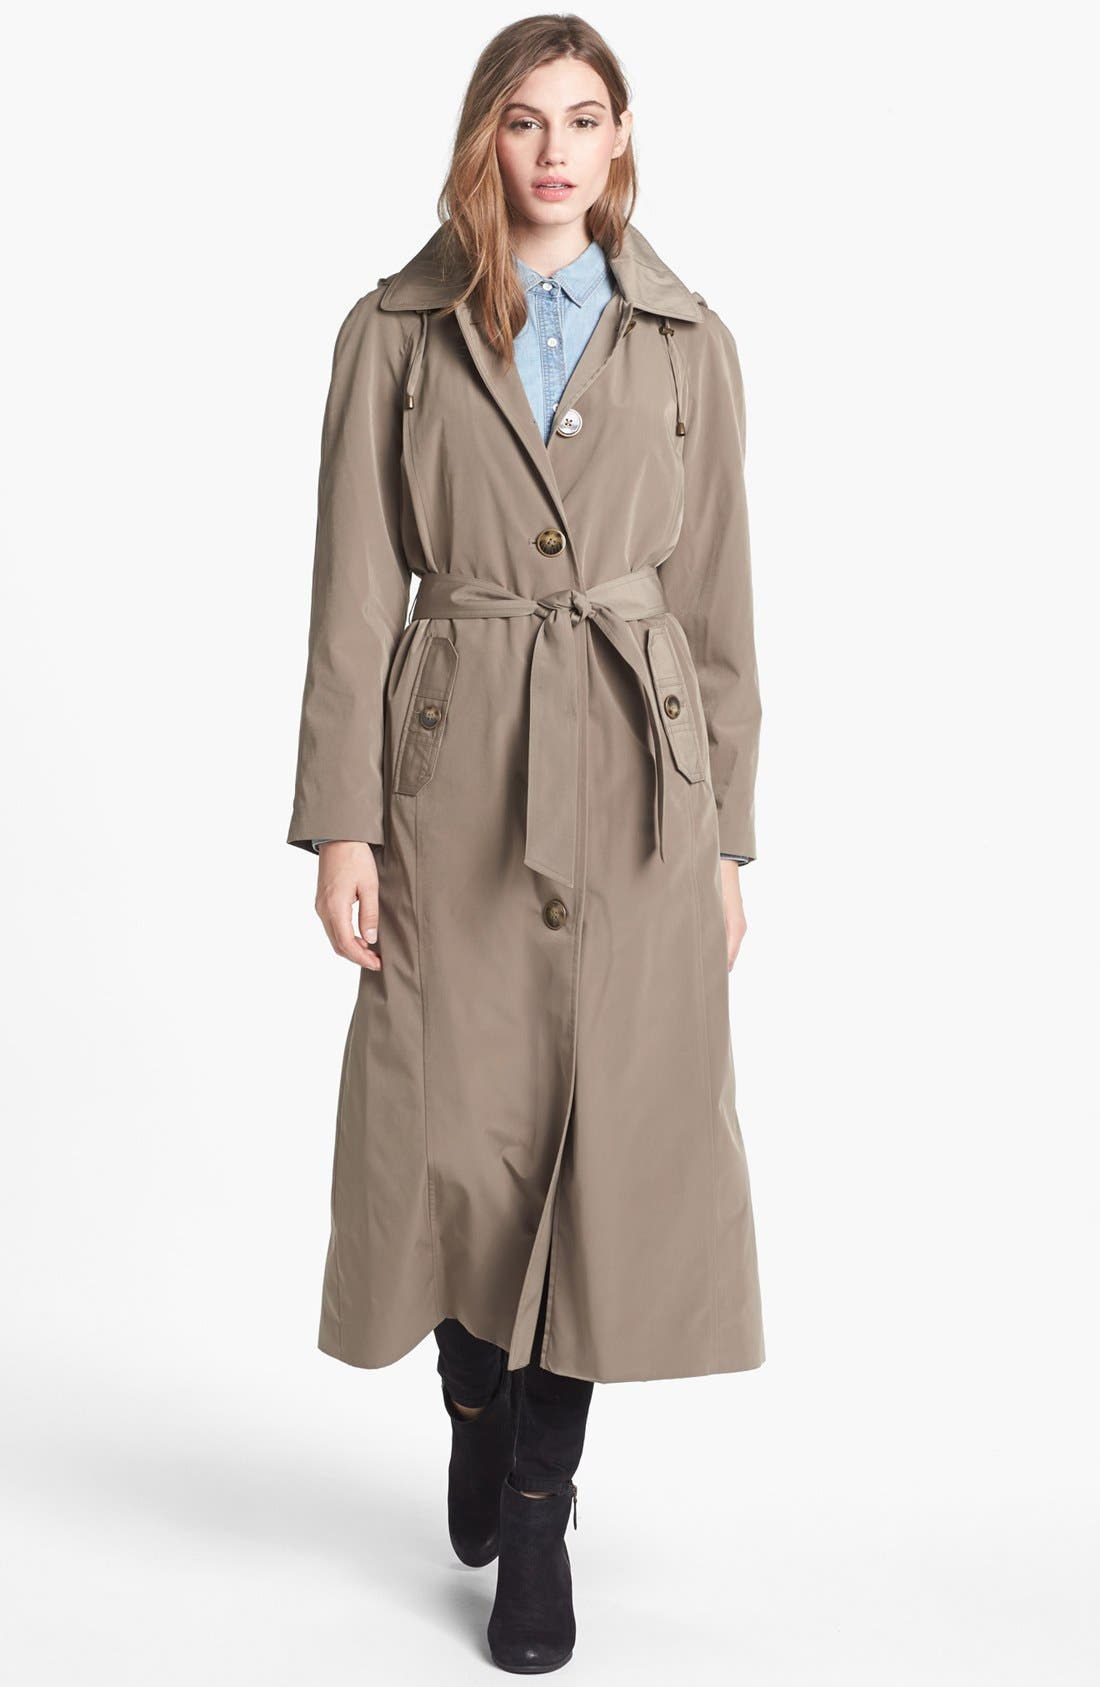 Alternate Image 1 Selected - London Fog Long Trench Coat with Detachable Hood & Liner (Regular & Petite)